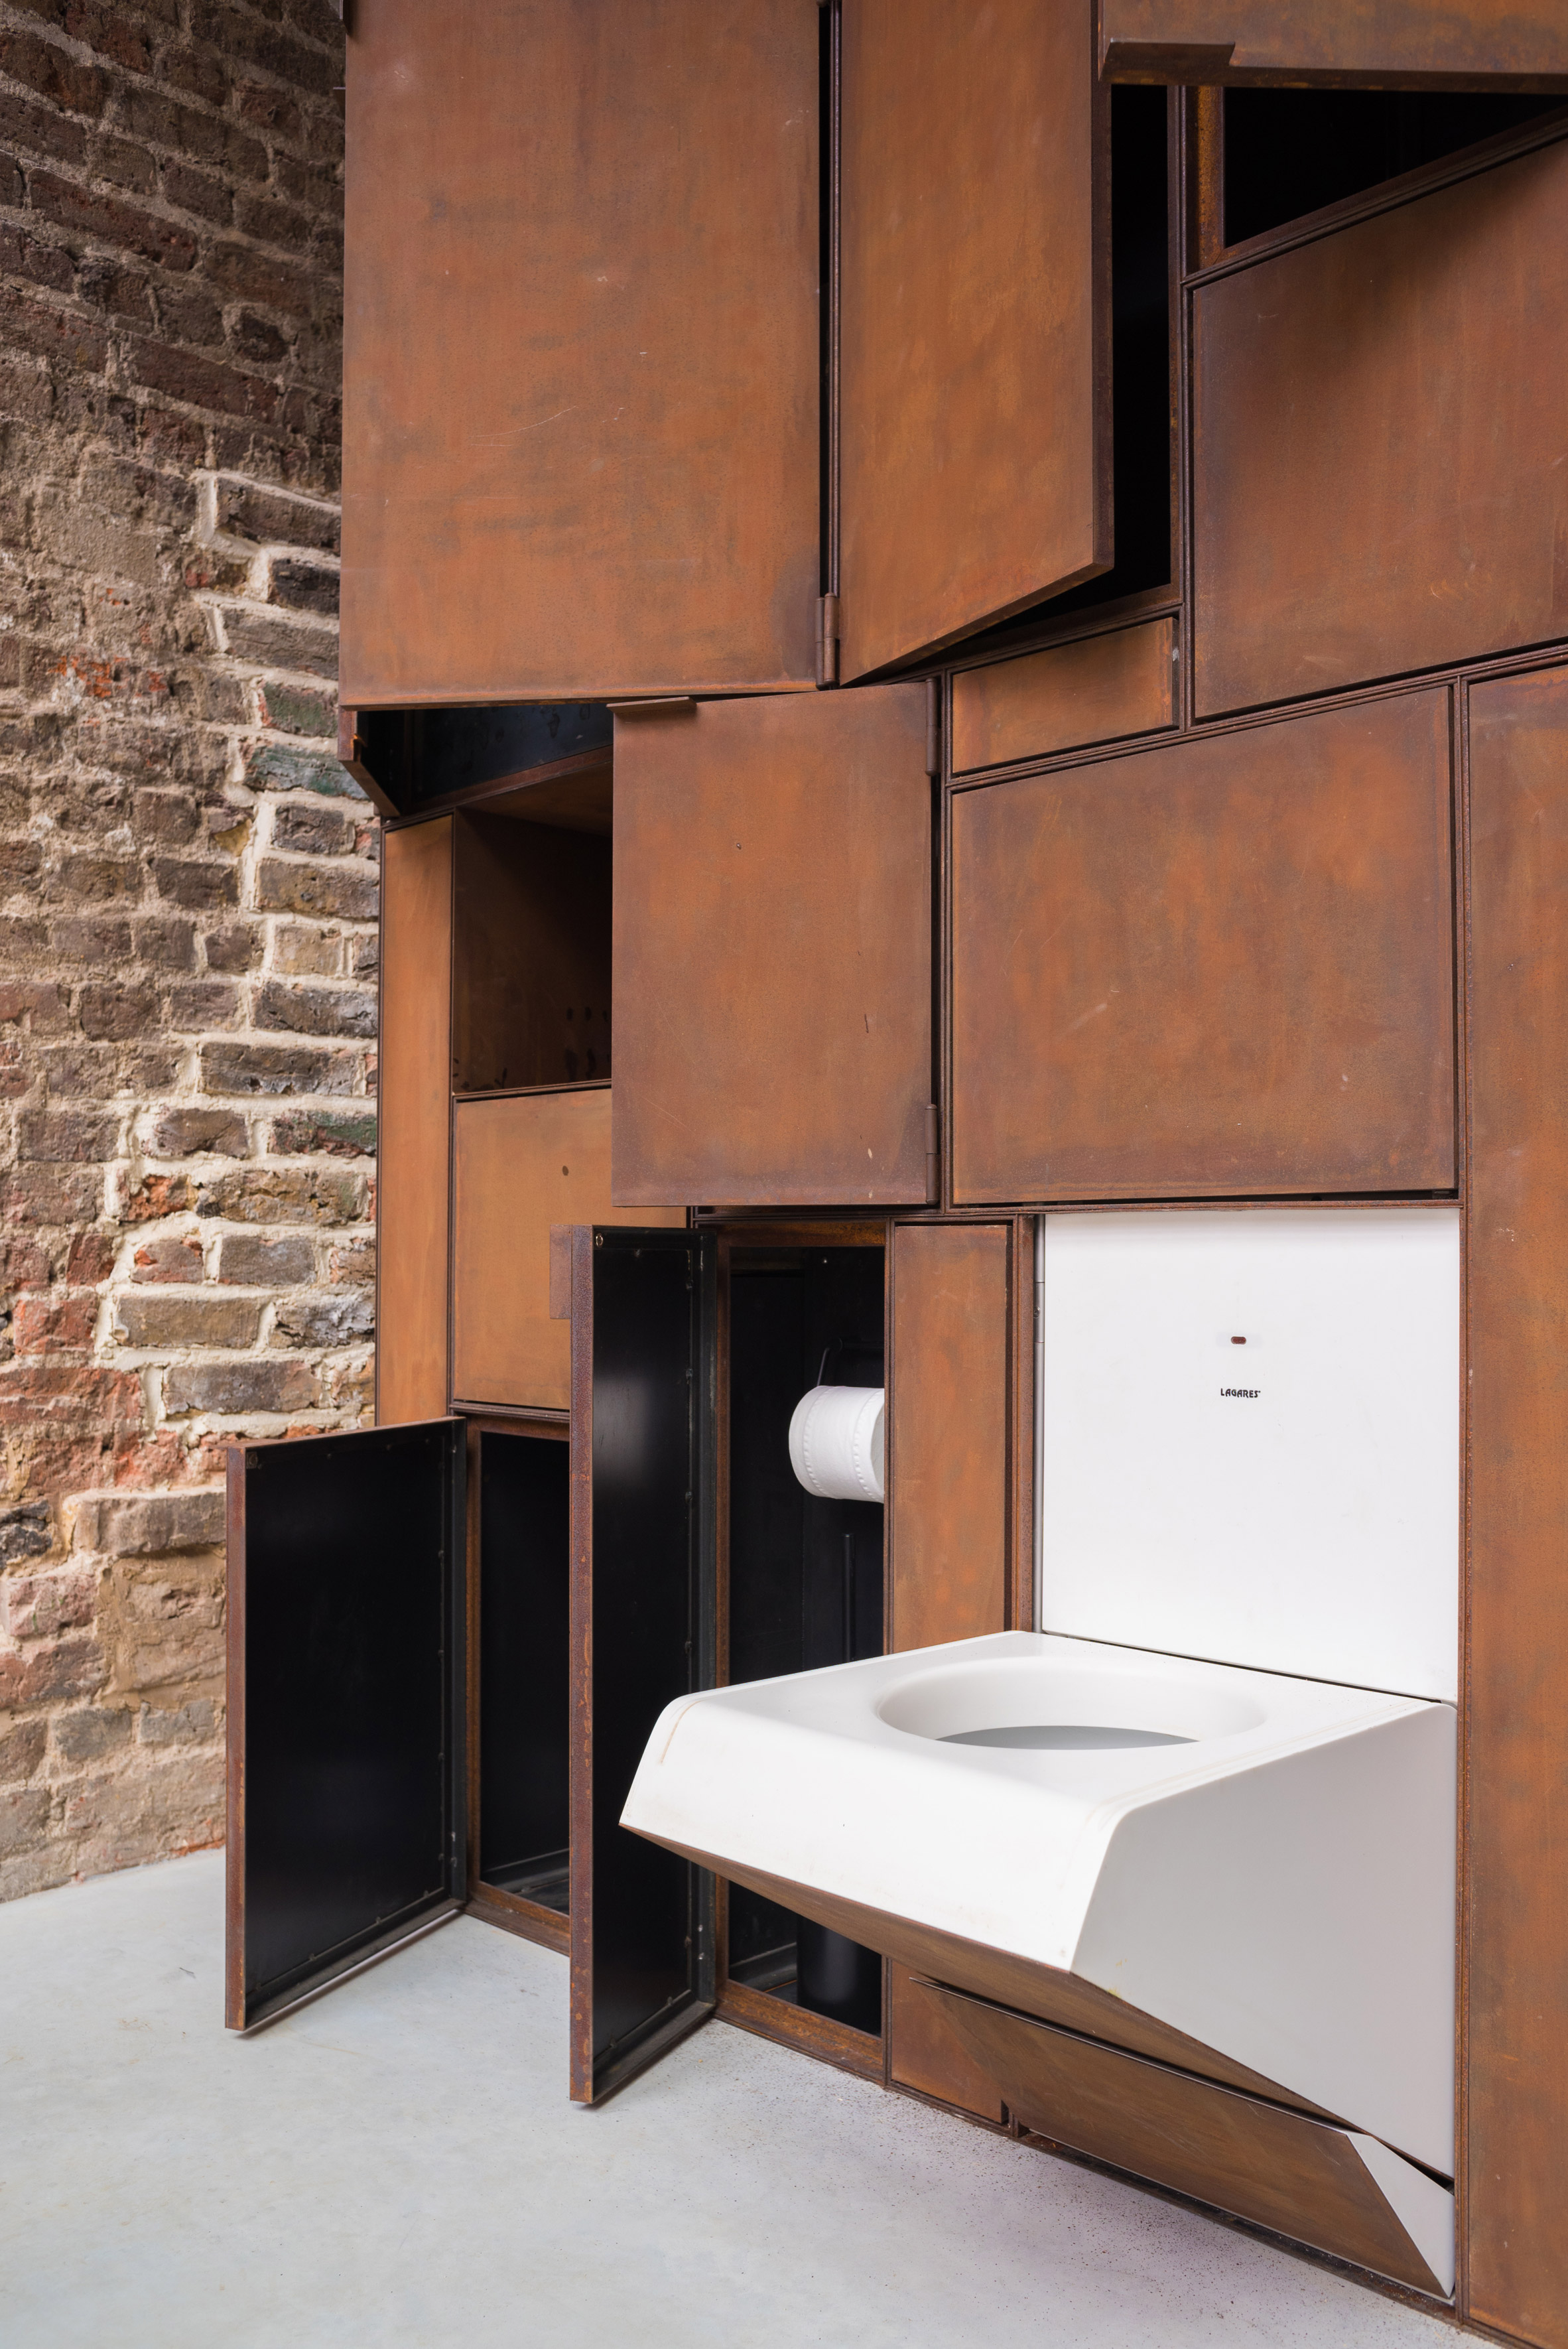 Residential extension: The Layered Gallery, London, by Gianni Botsford Architects